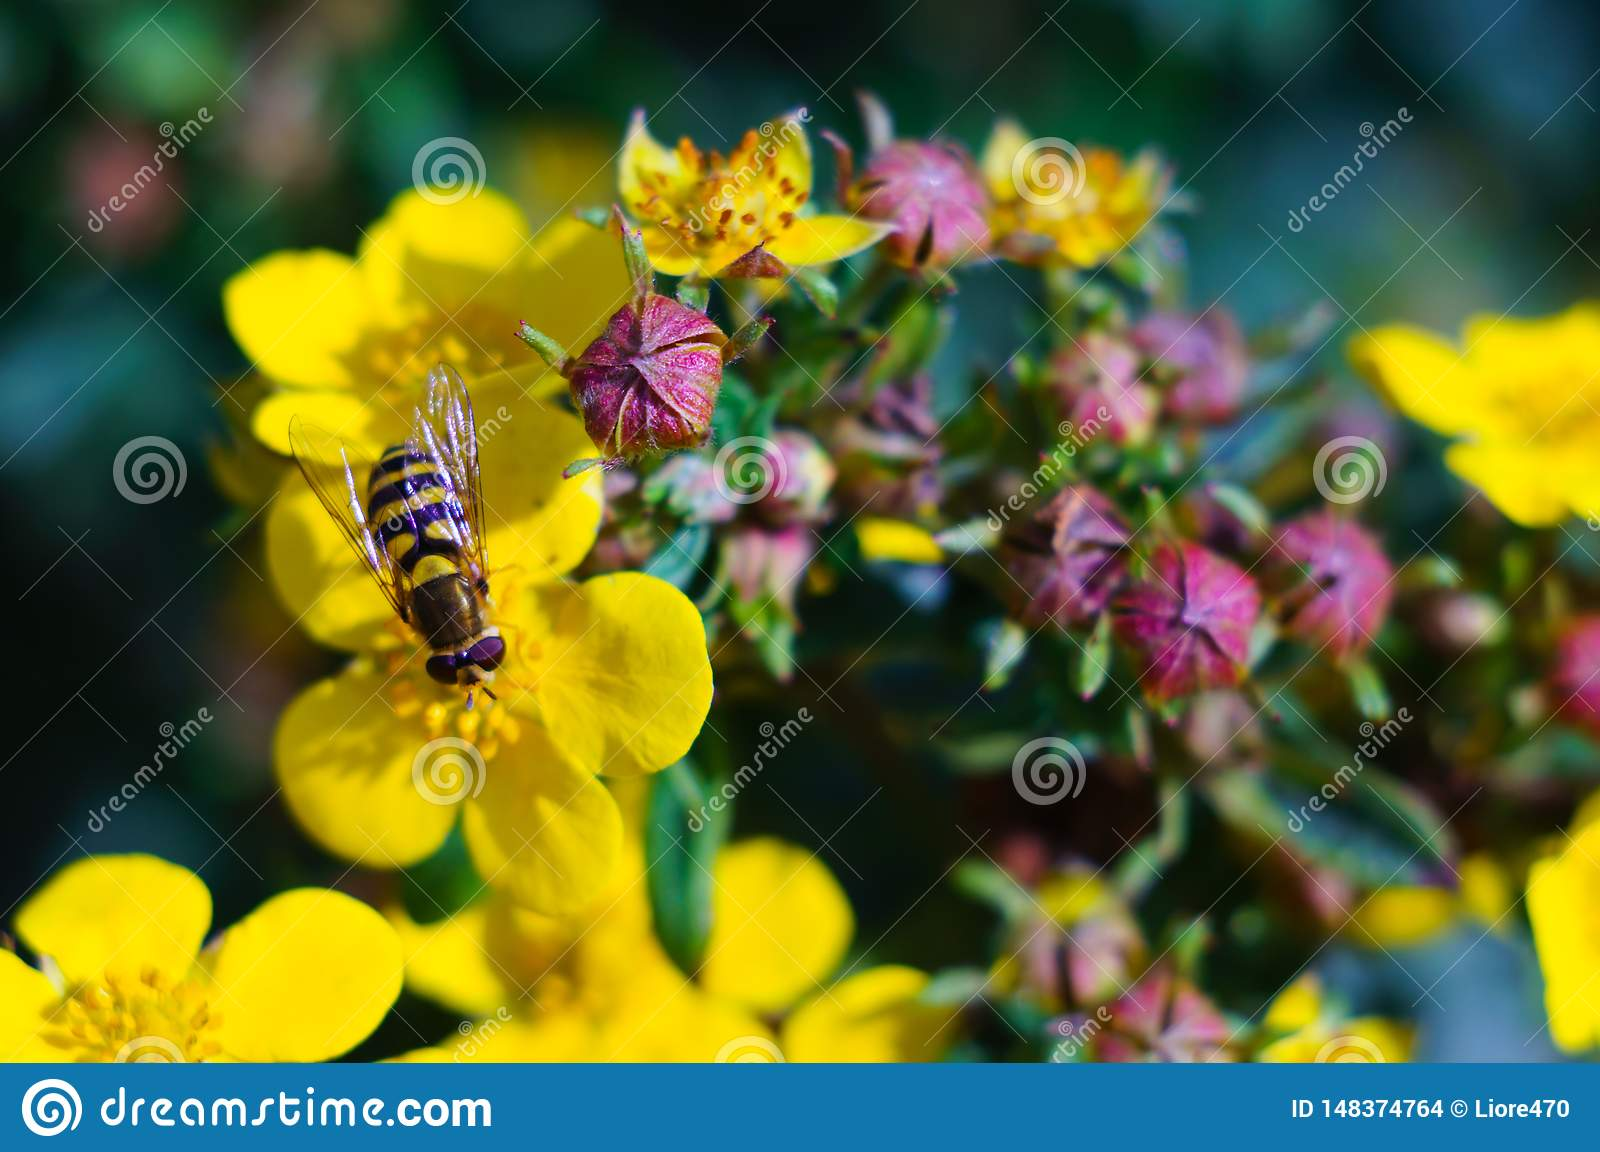 A bee collects nectar on a yellow flower on a clear sunny day. Close-up. Summer concept. Soft focus